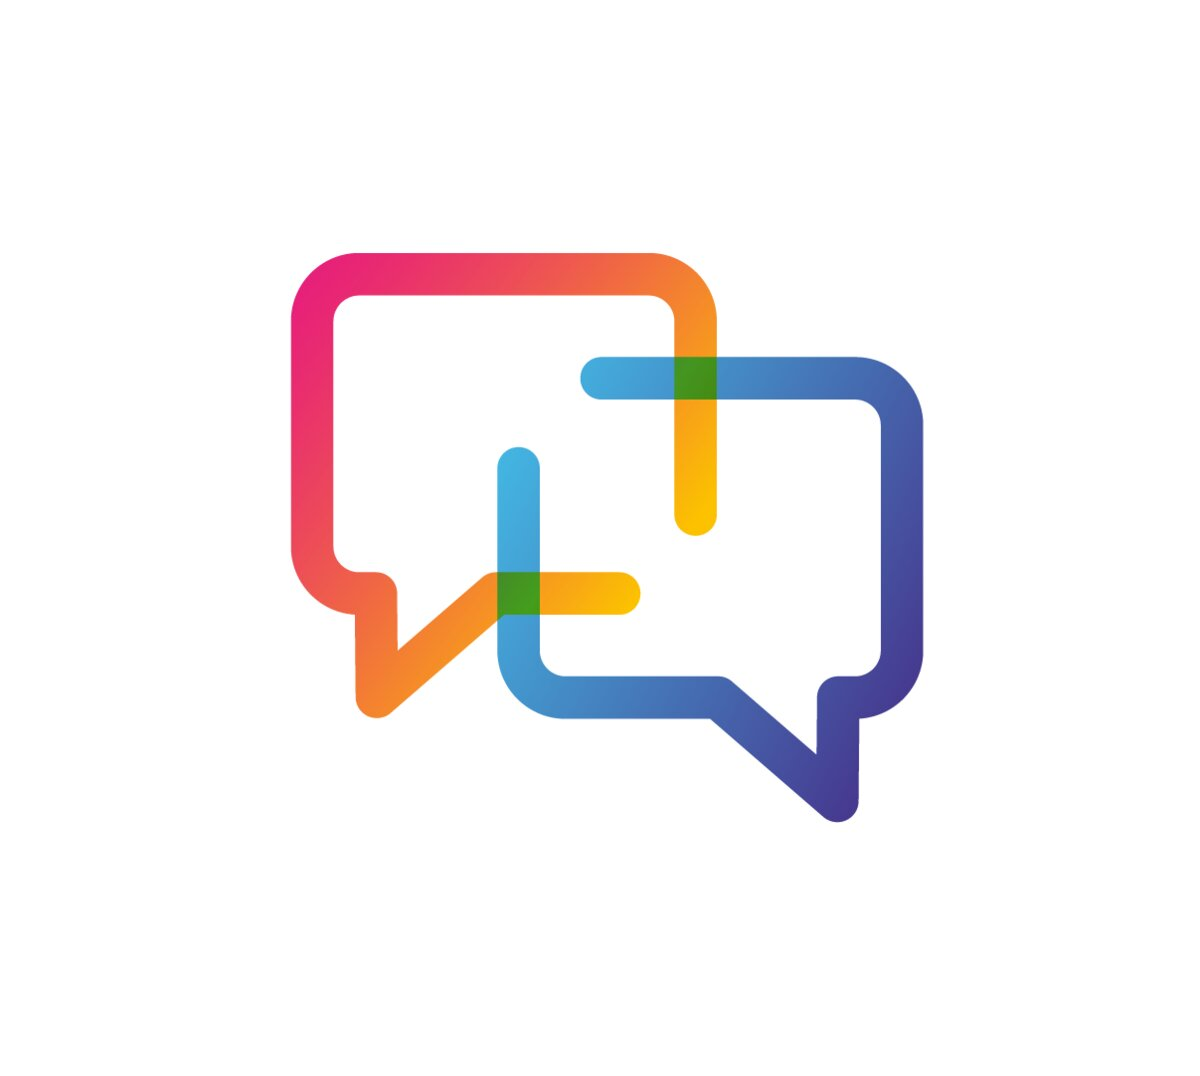 Speech-bubbles icon